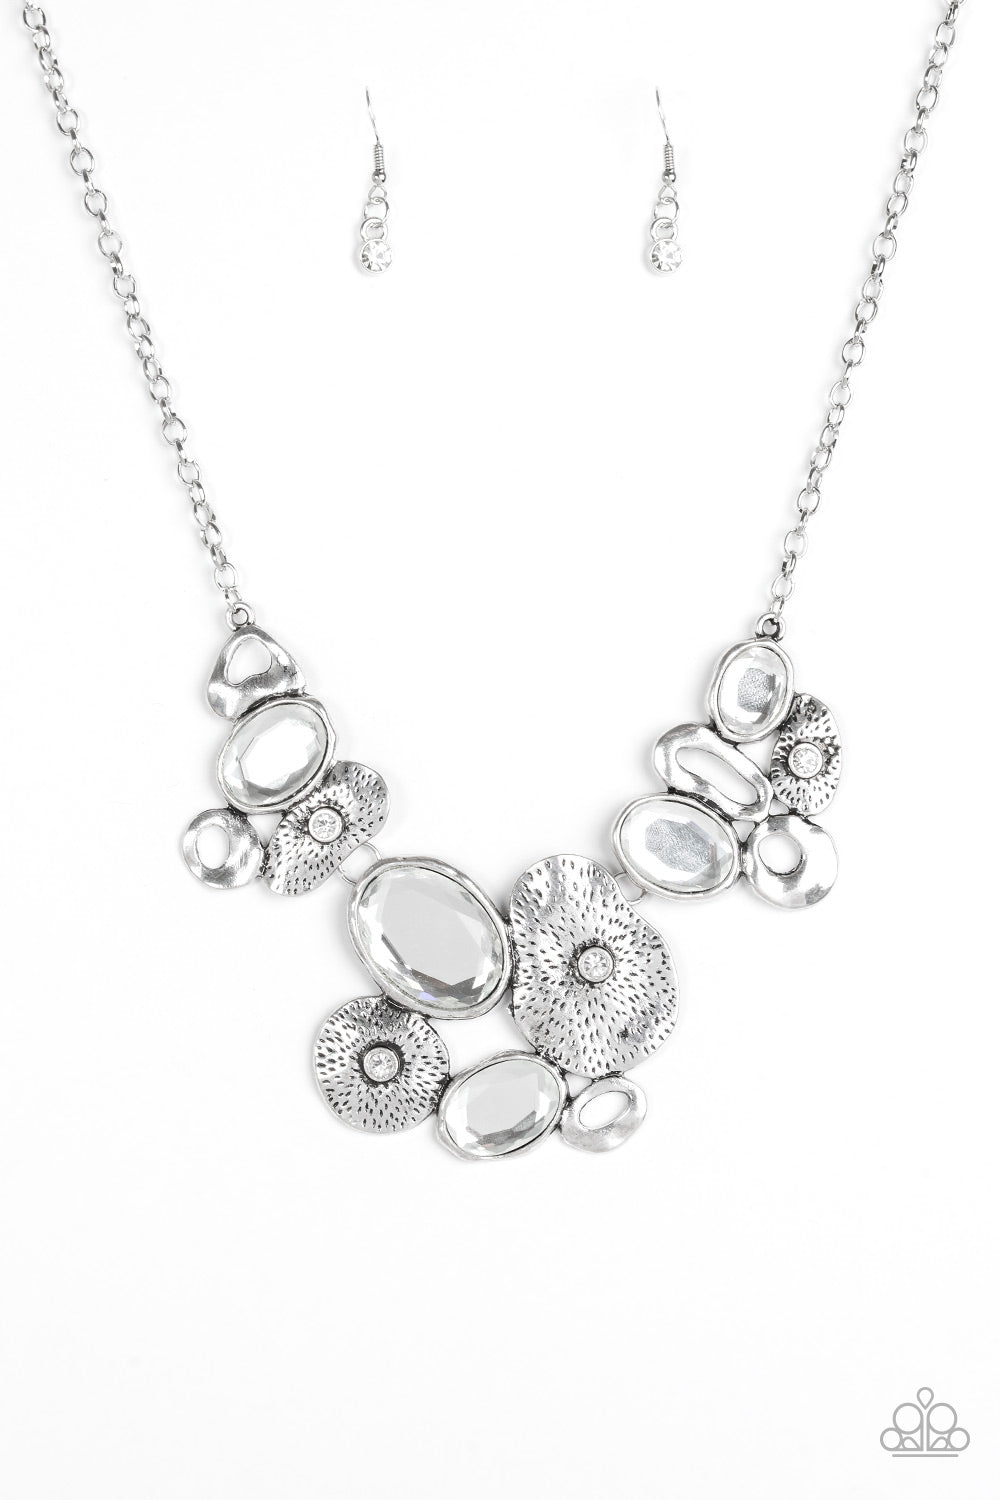 Paparazzi Grotto Grandeur Necklace - White